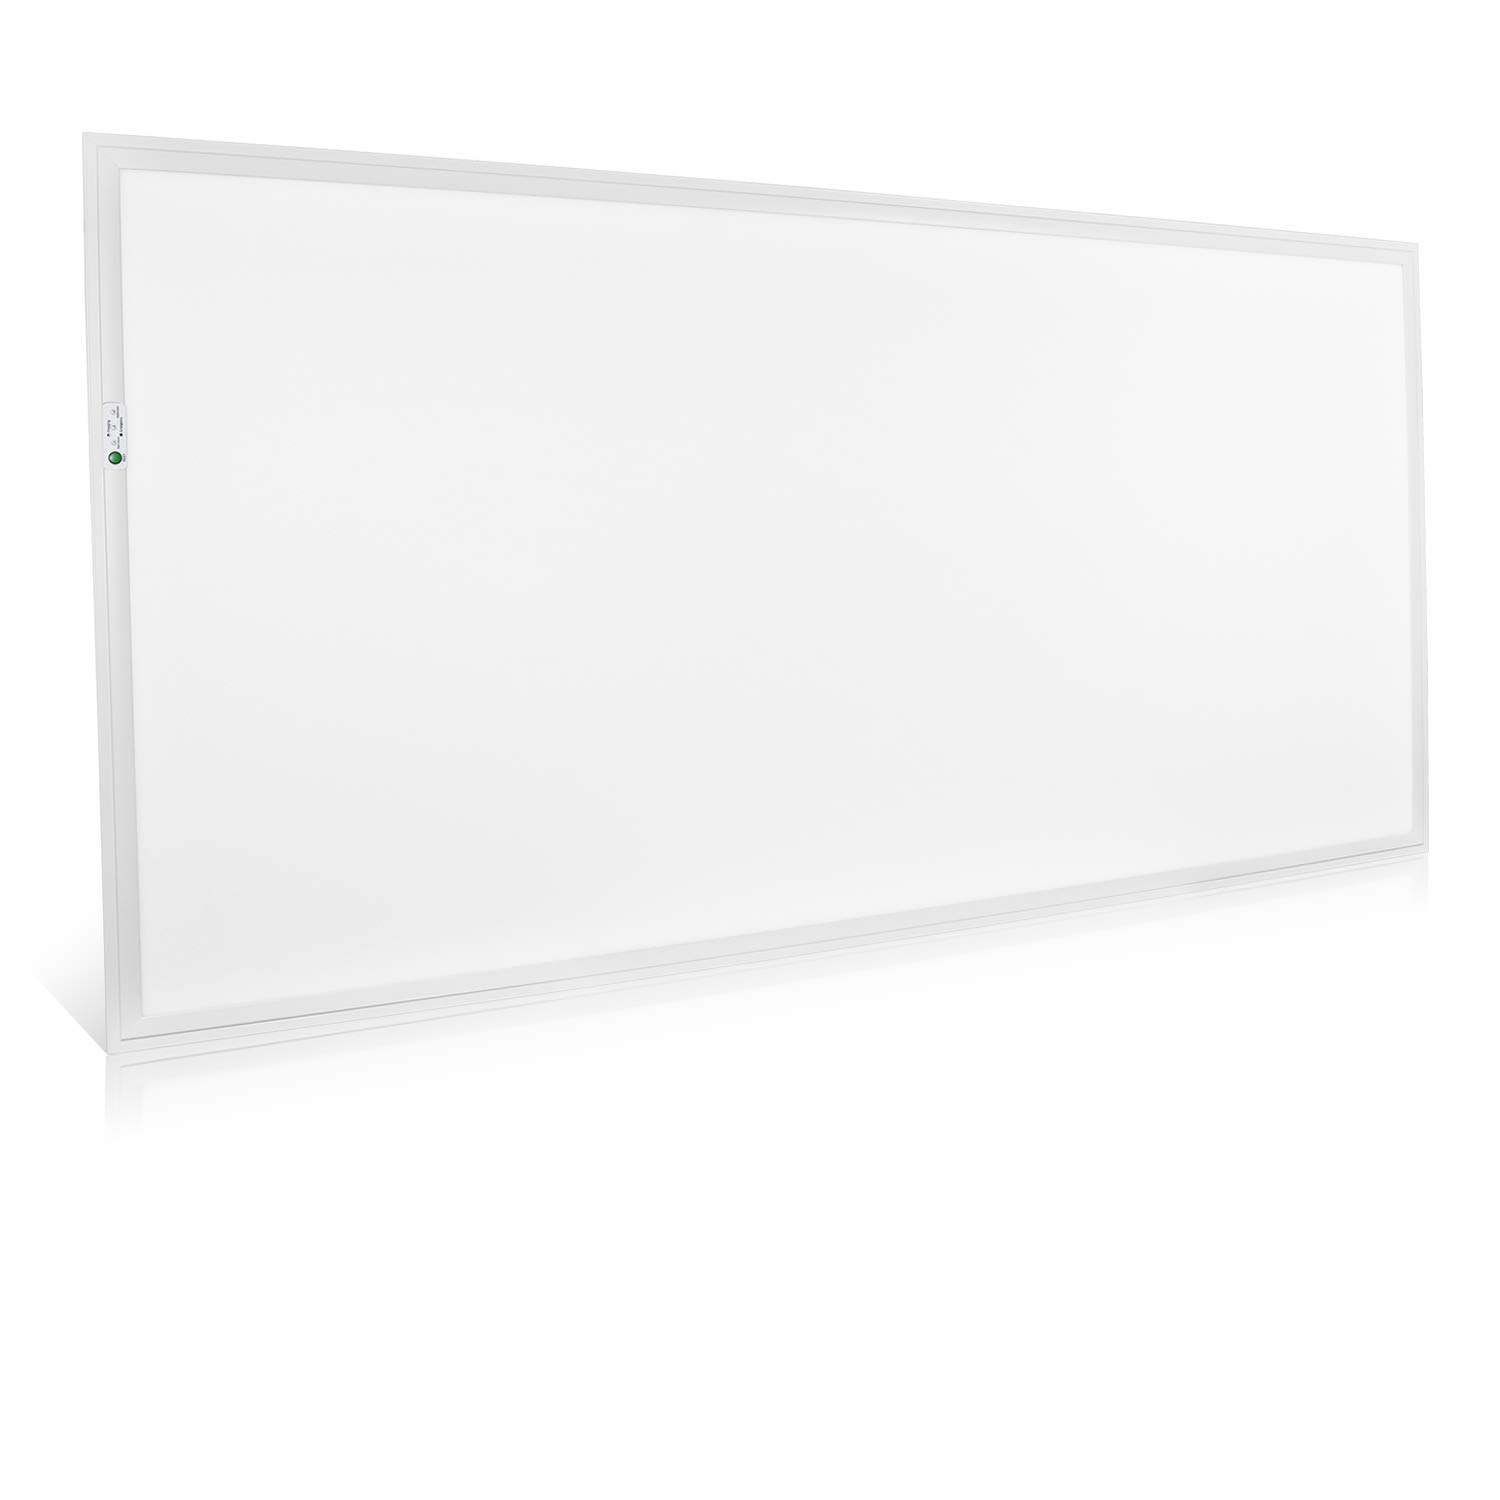 Luxrite 2x4 LED Flat Panel Light with Emergency Battery Backup, 60W 3500K Natural White, 0-10V Dimmable, 6630 Lumens, LED Drop Ceiling Lights, 100-277V, DLC and UL Listed, Ultra Thin Edge-Lit by LUXRITE (Image #1)